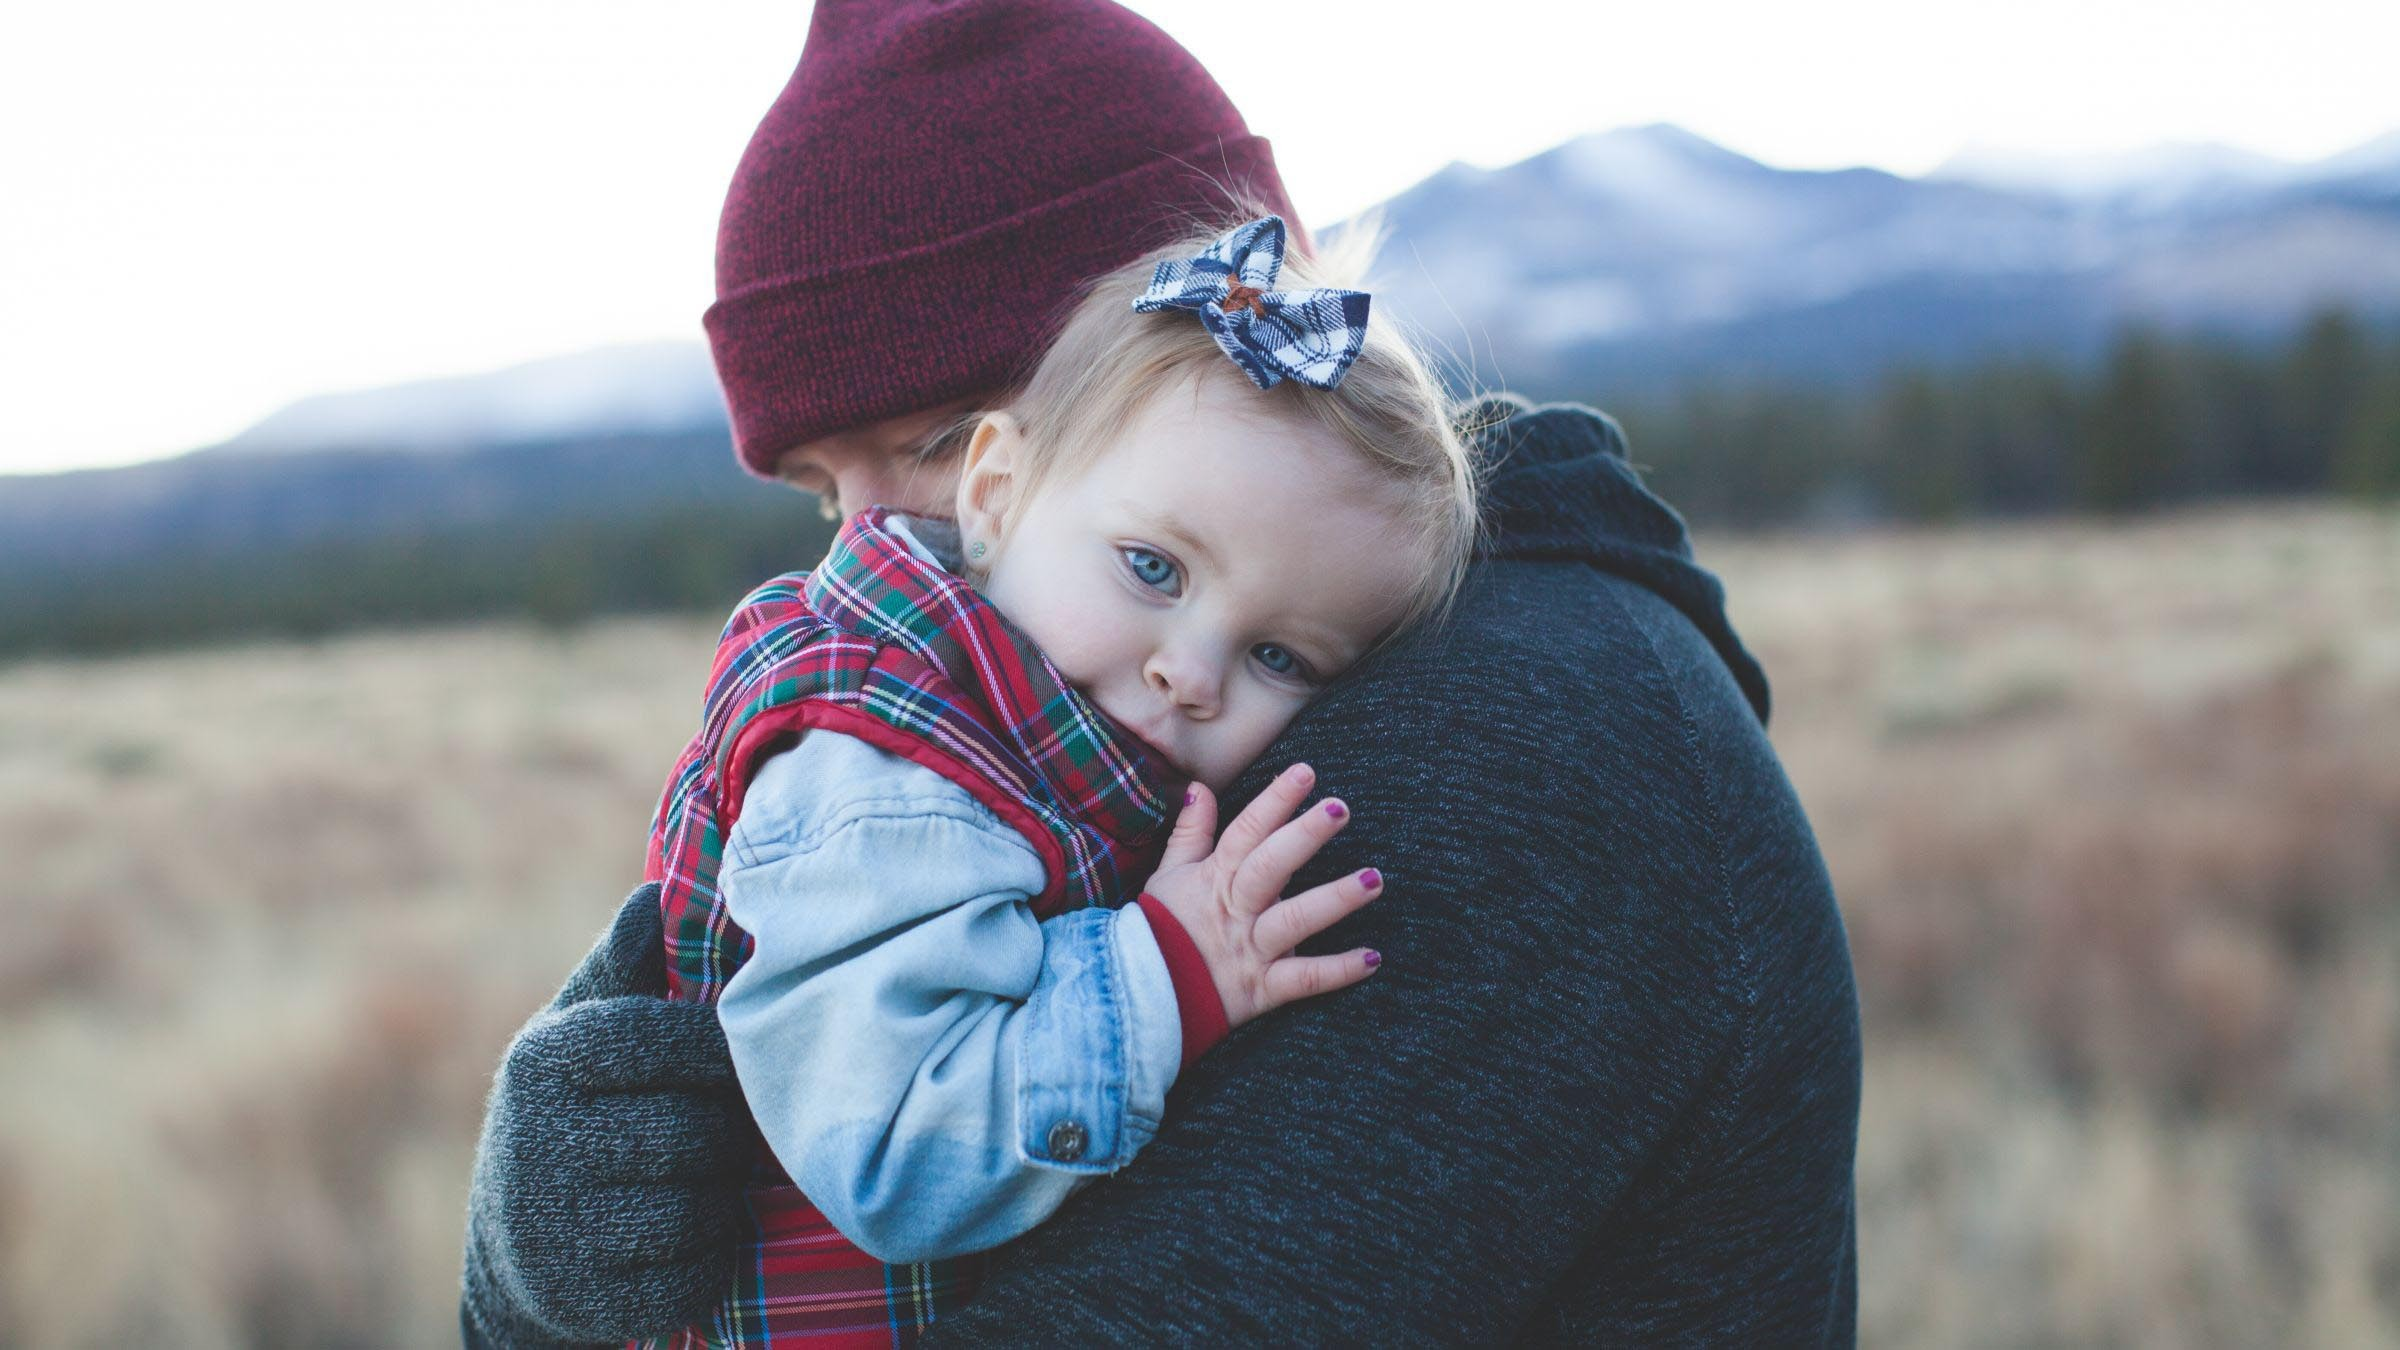 Authentic Help for a Young Child